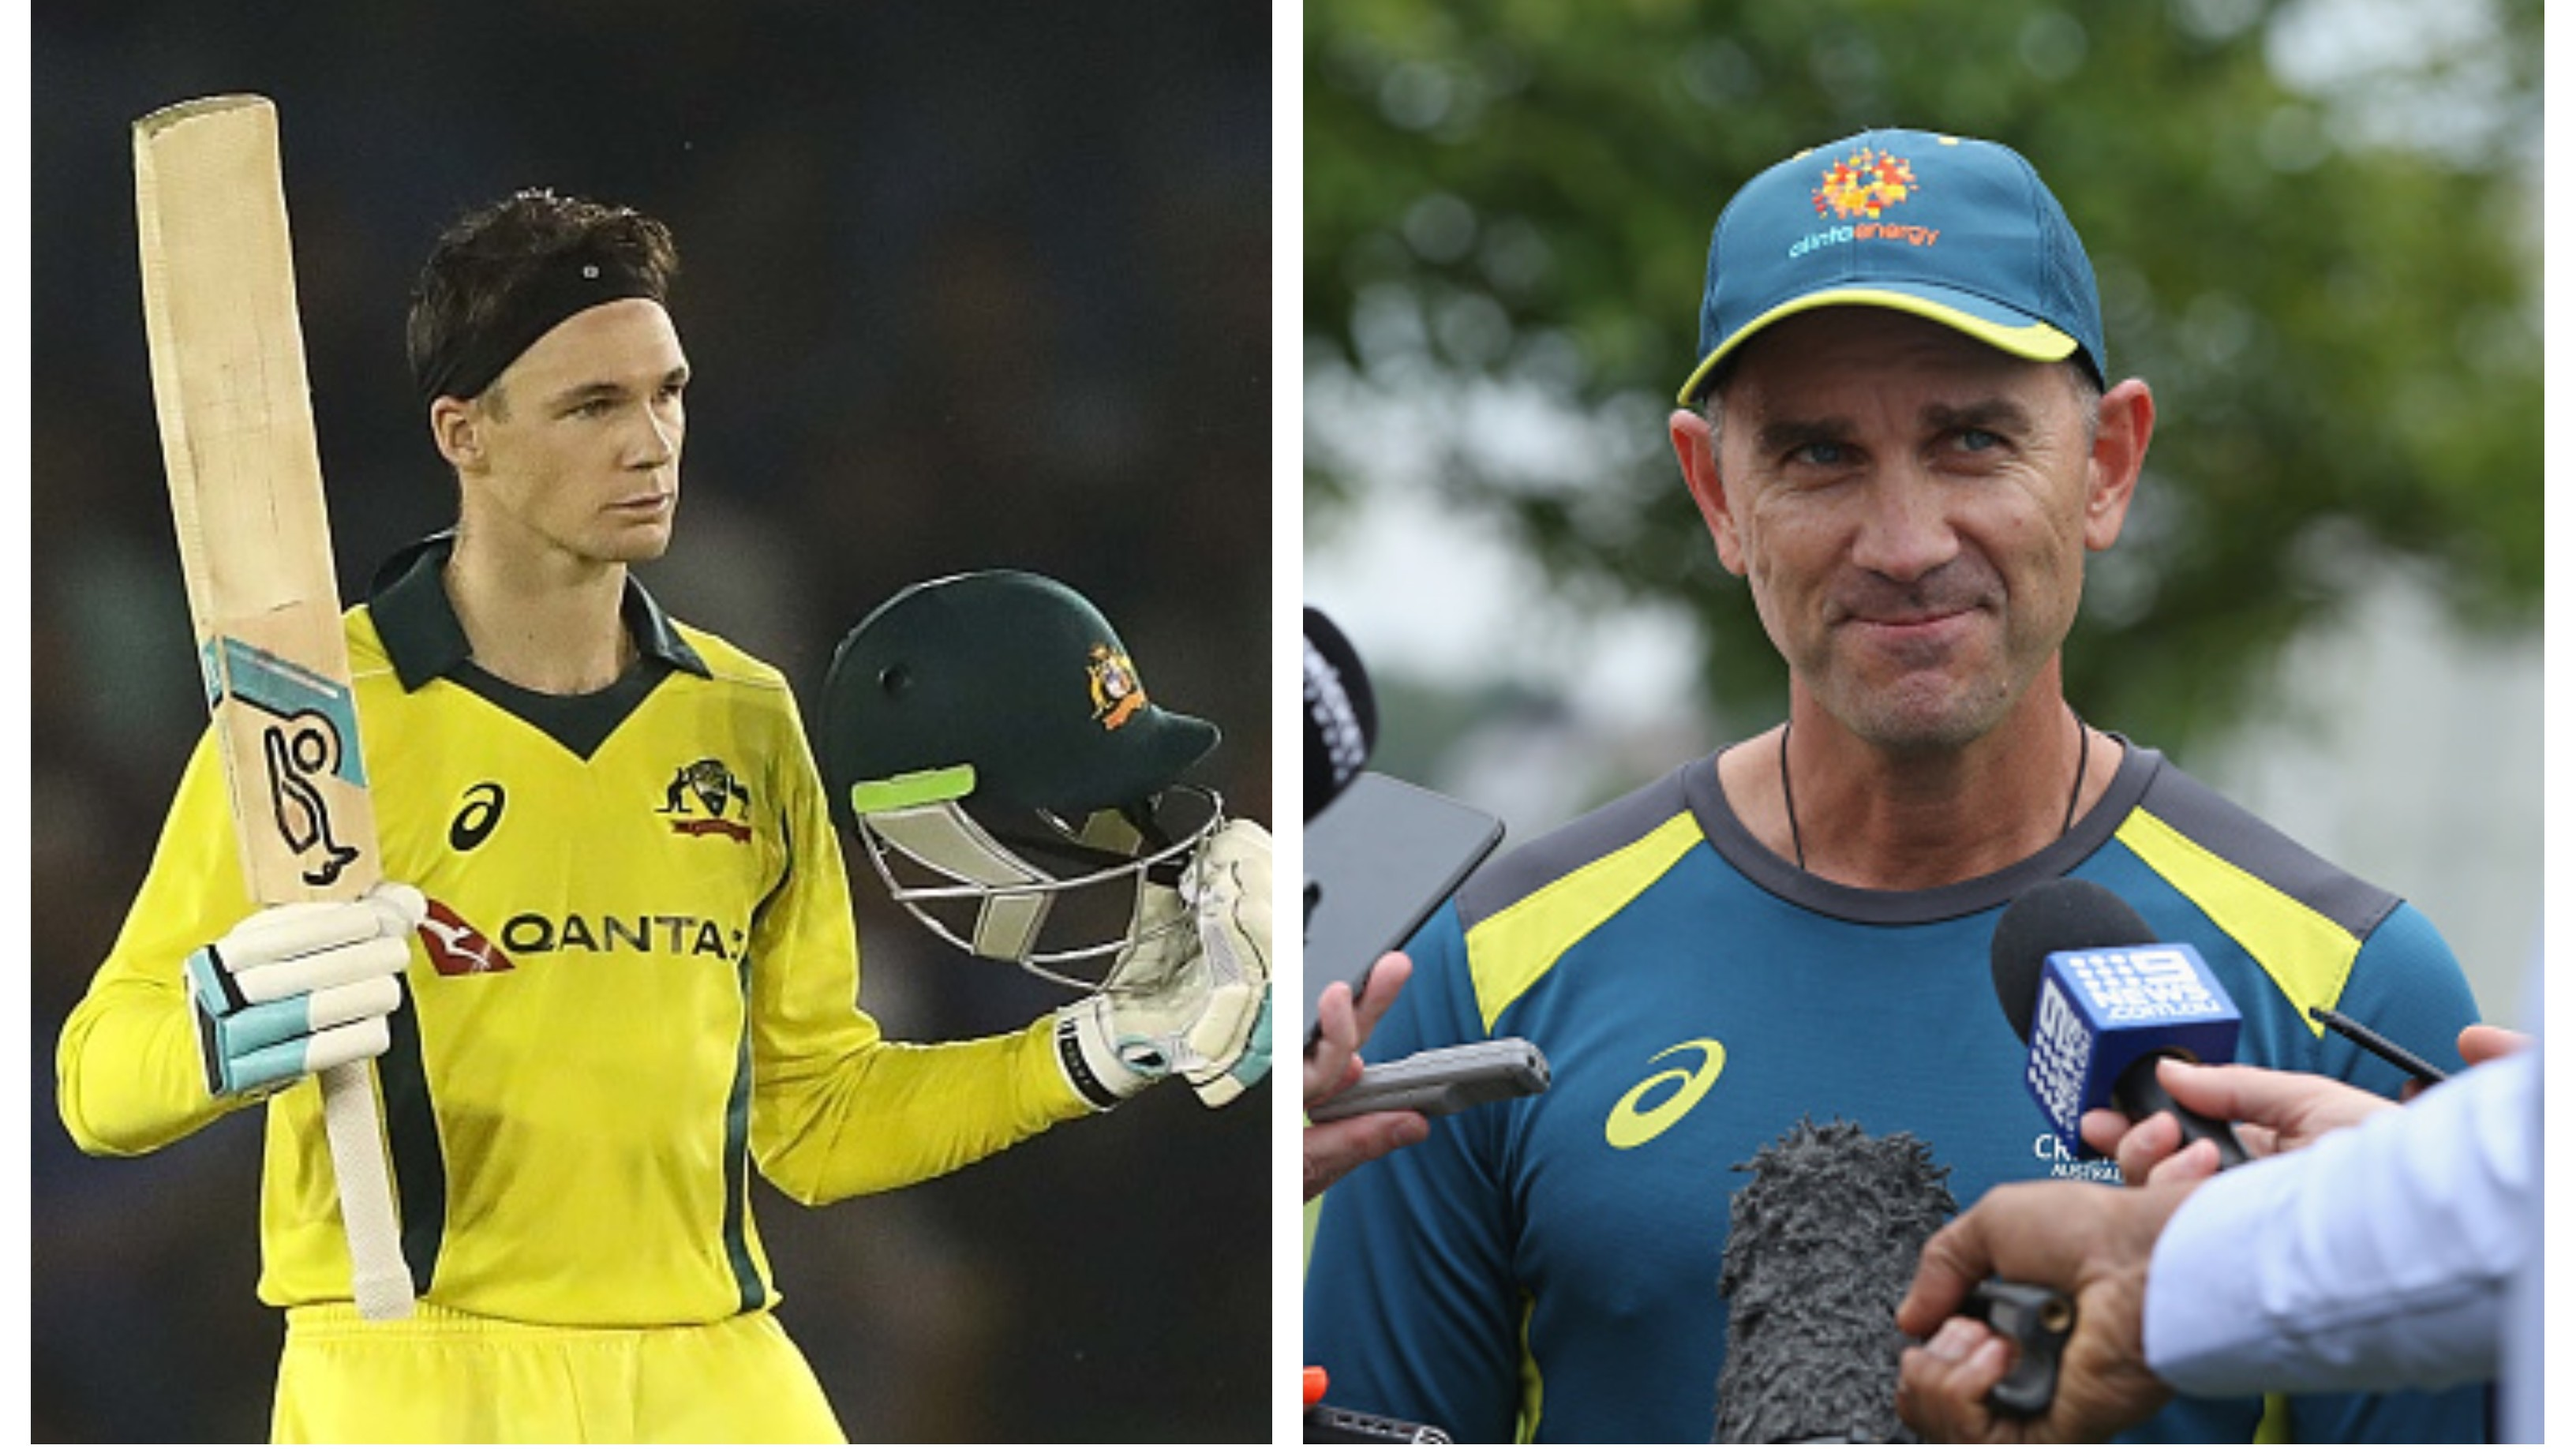 CWC 2019: Justin Langer confirms Peter Handscomb's inclusion for the semi-final against England